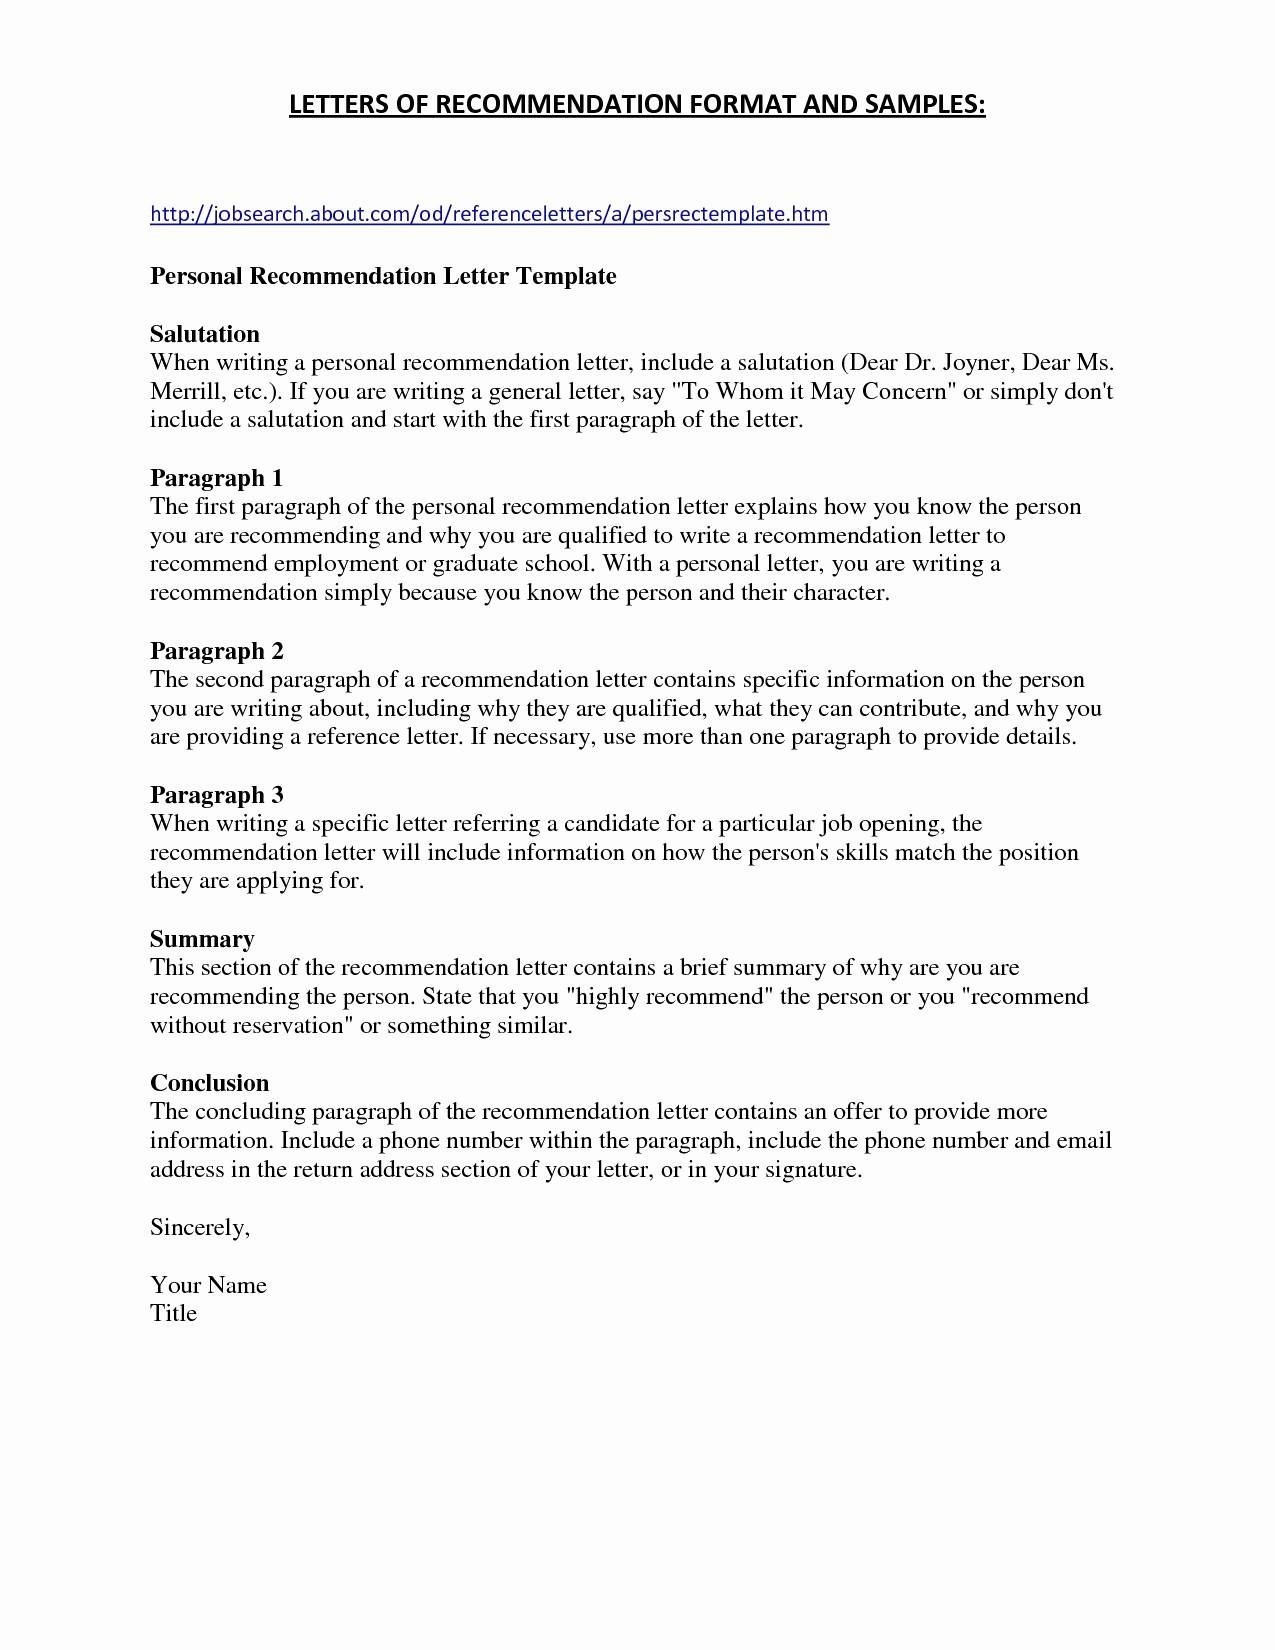 Short Cover Letter Template - Sample Short Cover Letter for Job Application Inspirationa Cover